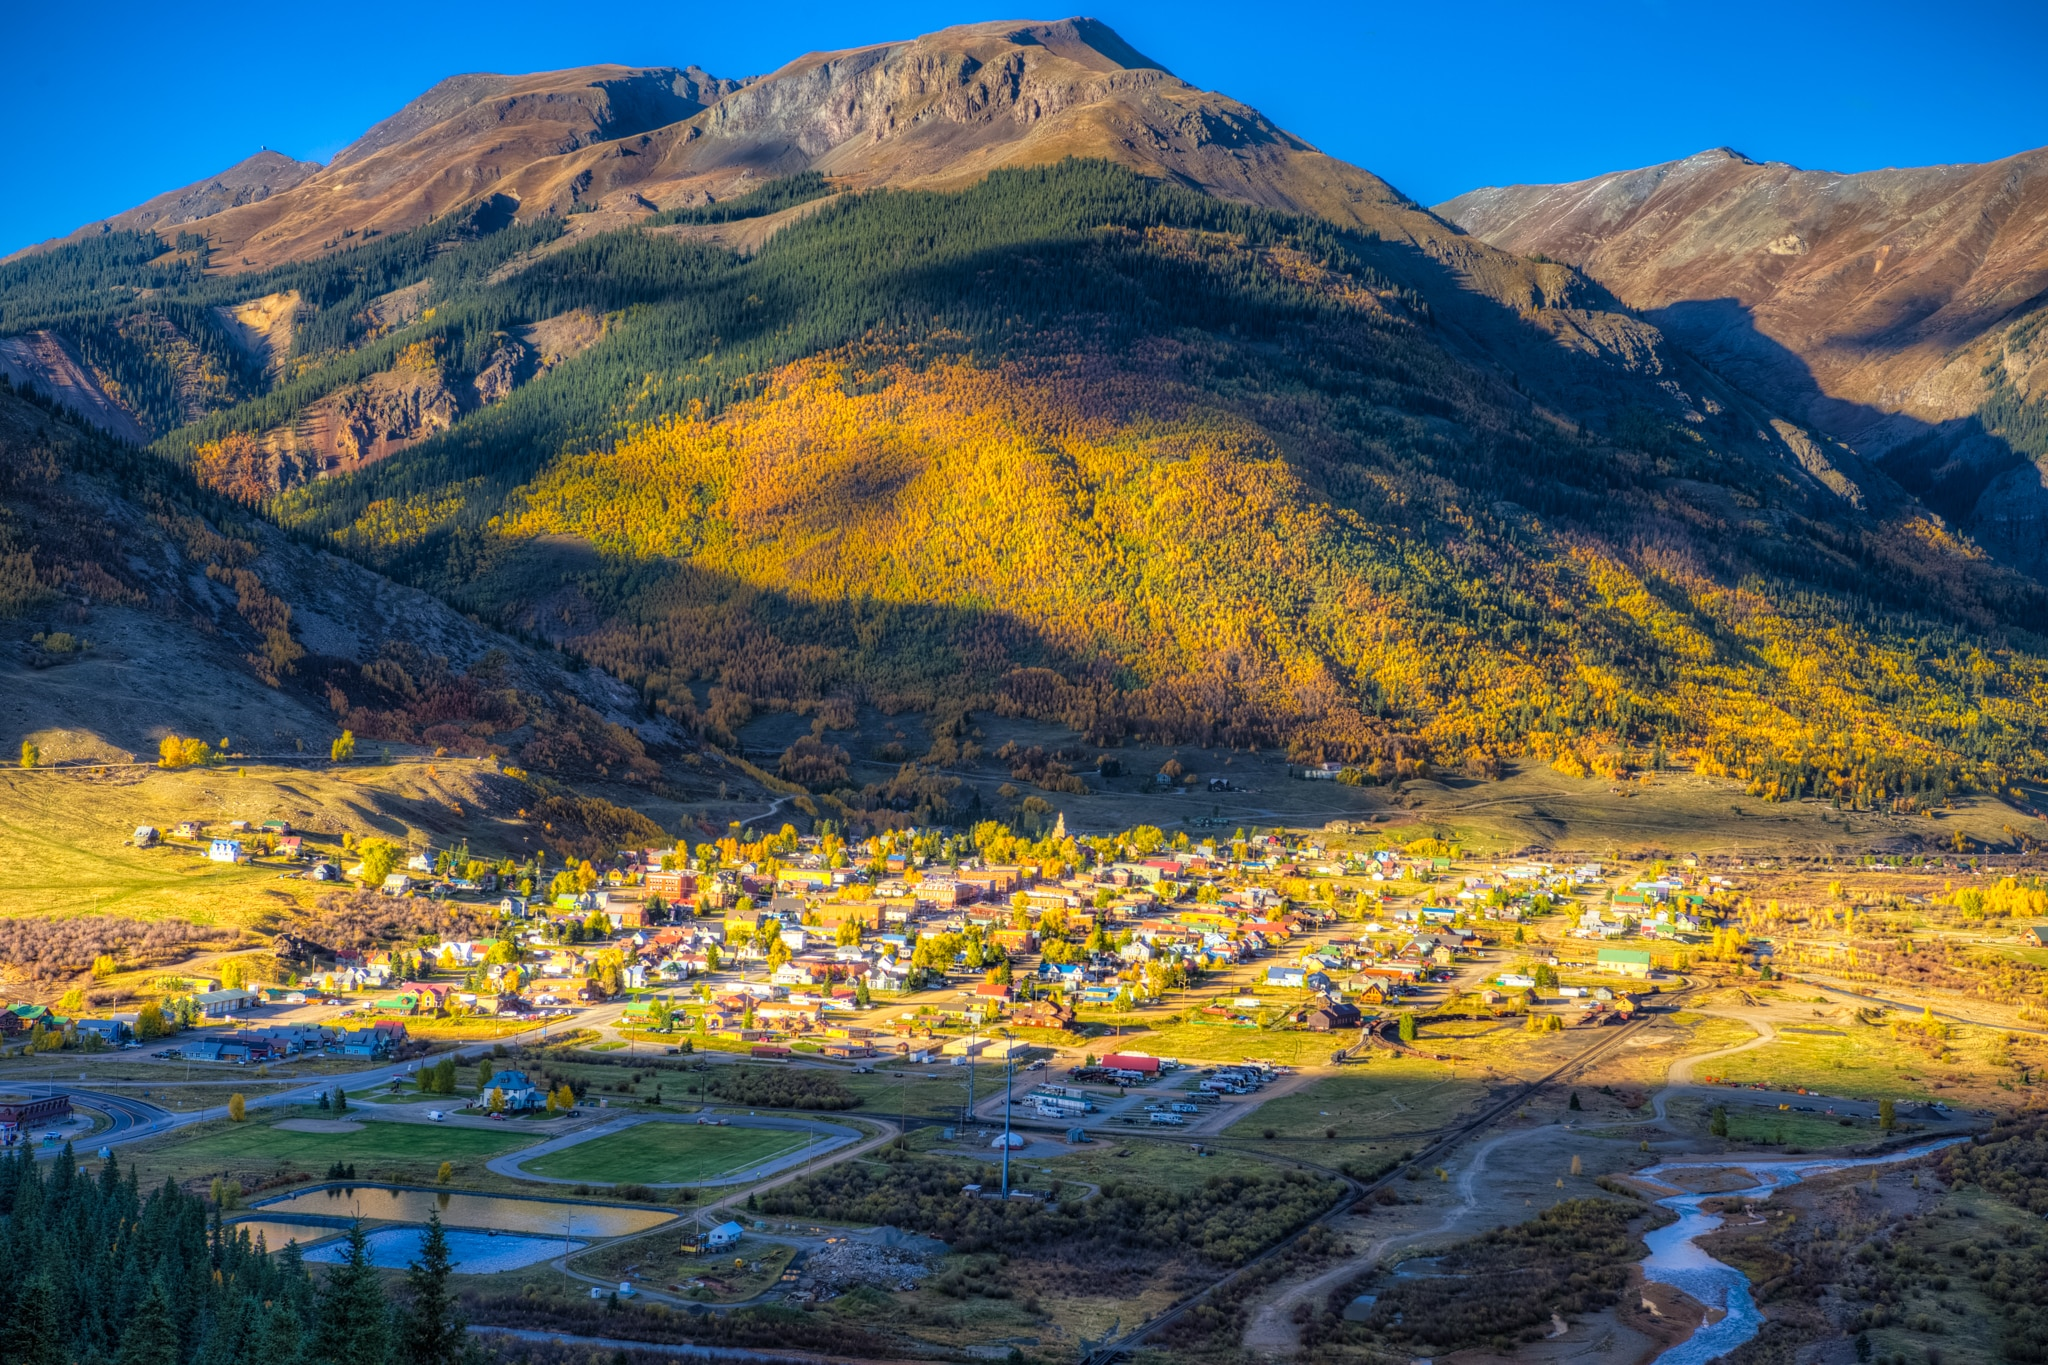 A view of Silverton,. Colorado, taken from an overview south of town on Highway 550.